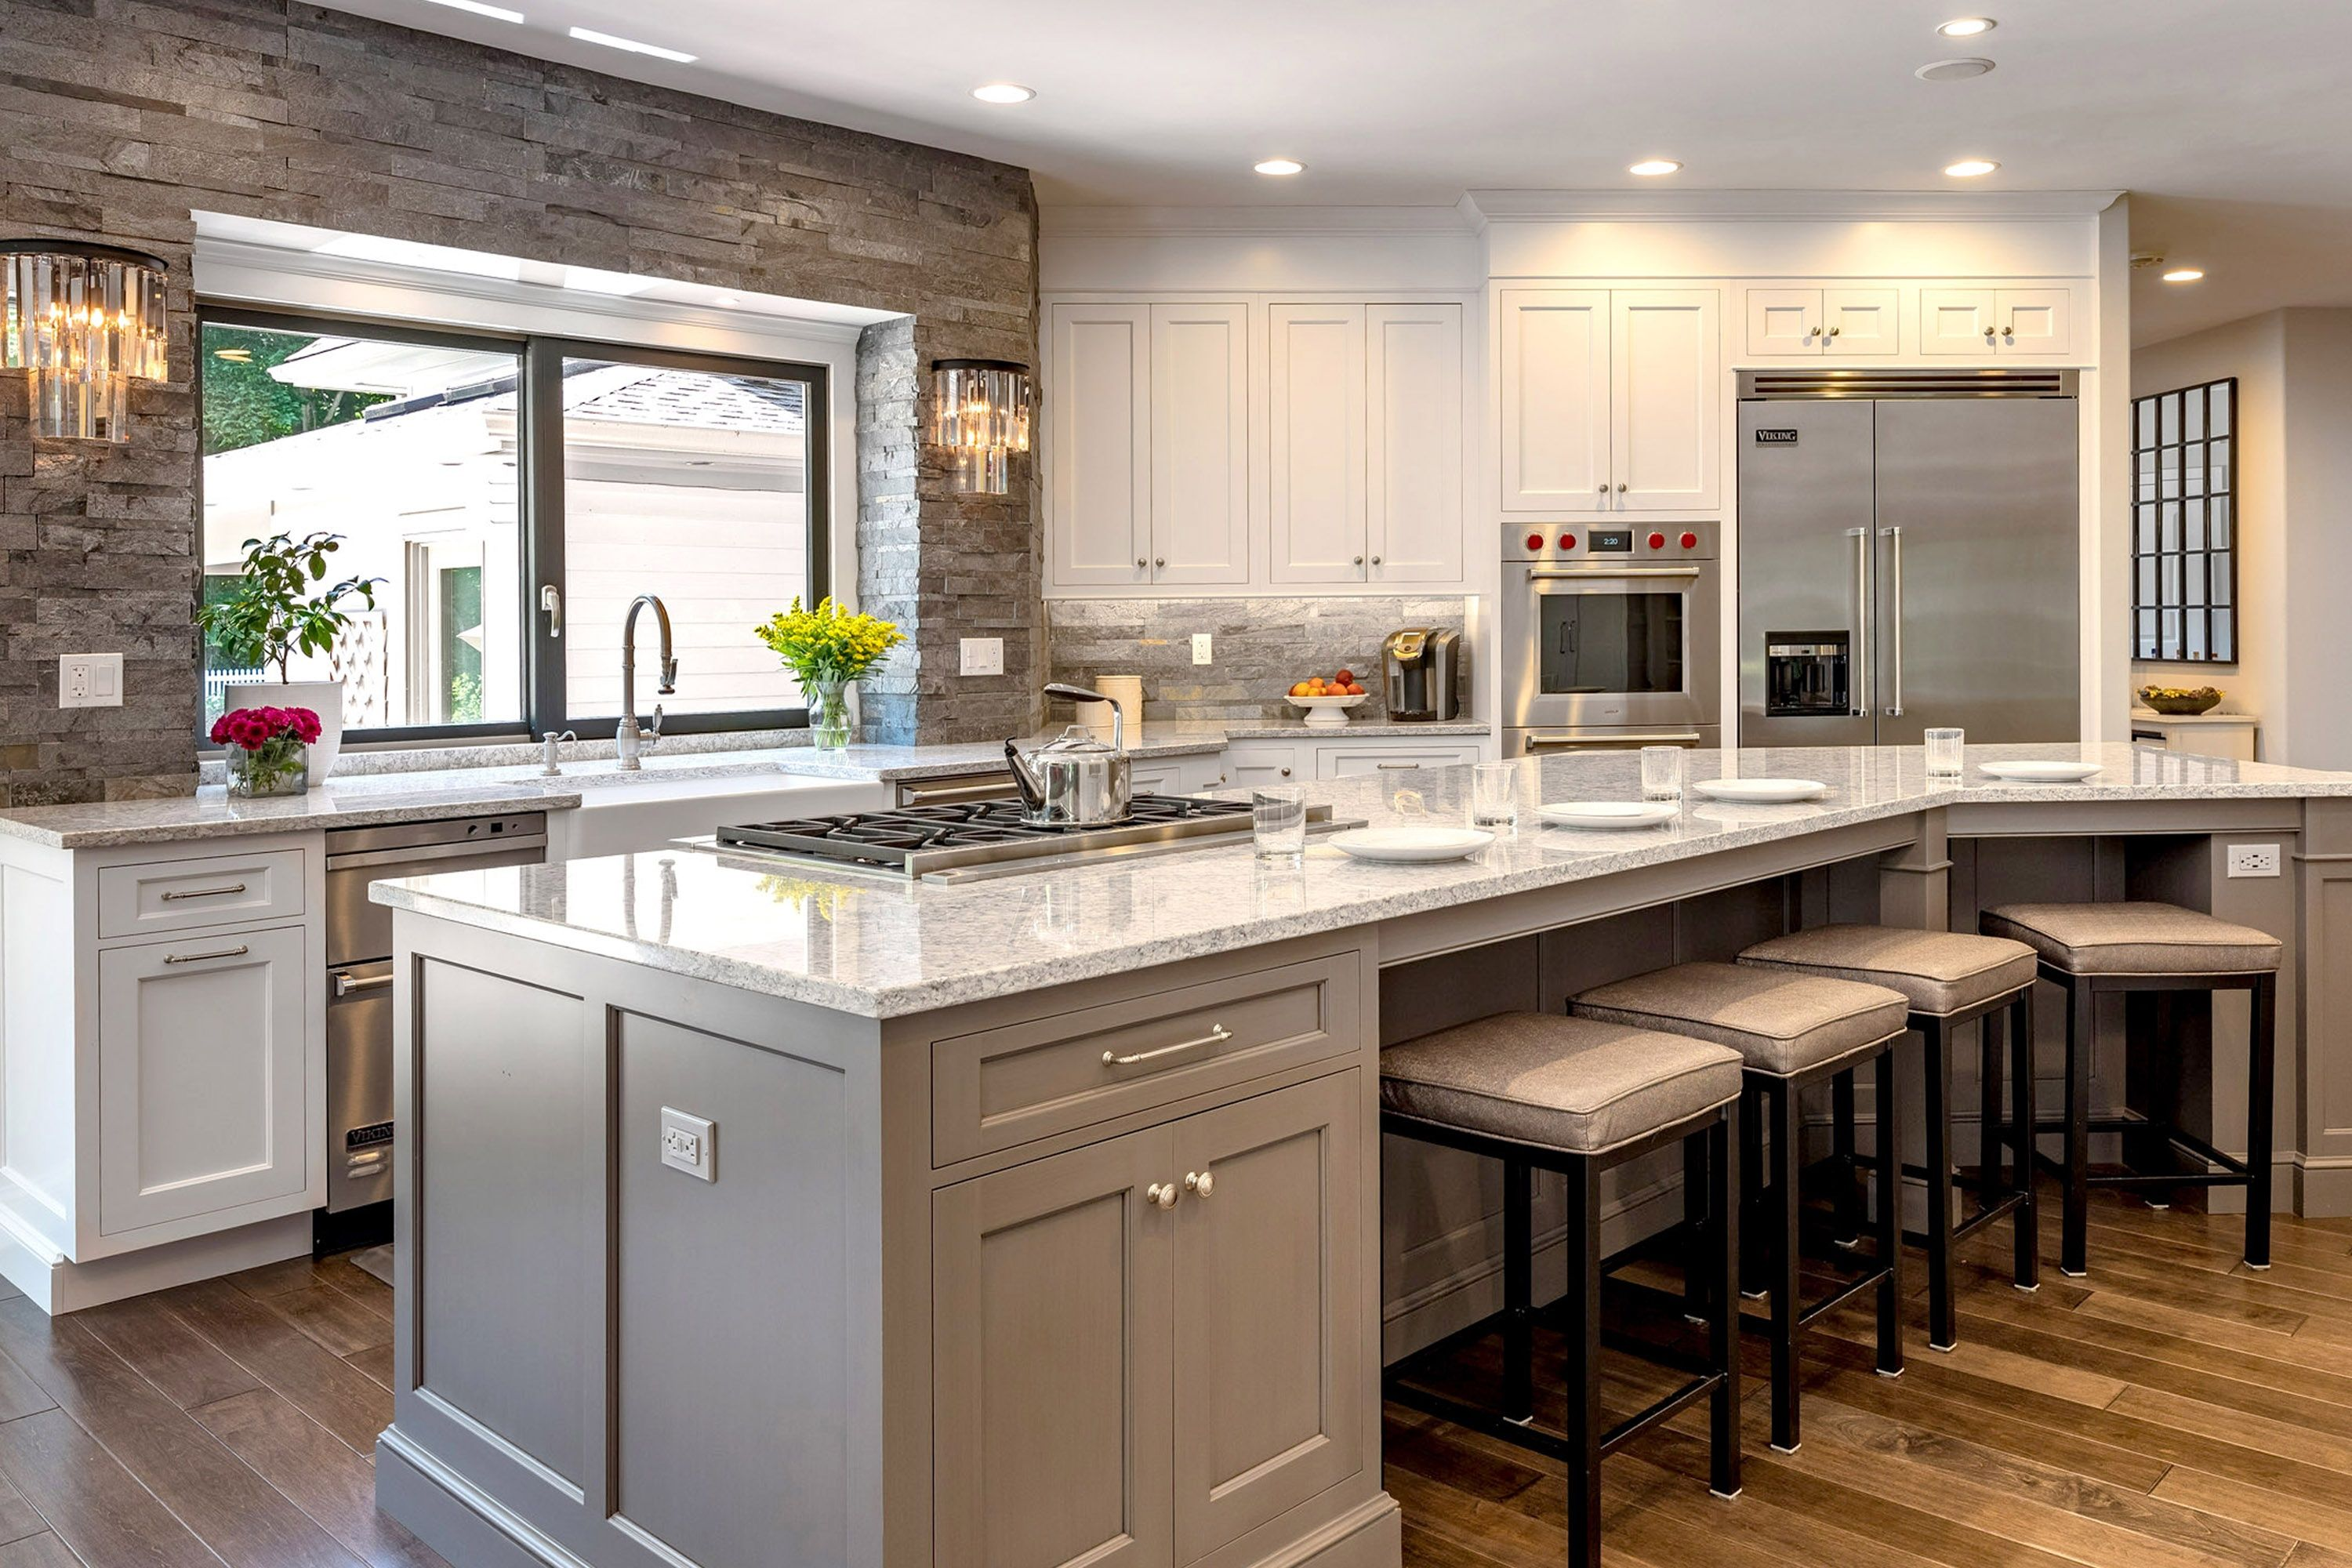 Traditional Gray And White Kitchen In Cheshire Ct The Kitchen Company Gray And White Kitchen Traditional Kitchen Design Transitional Kitchen Design